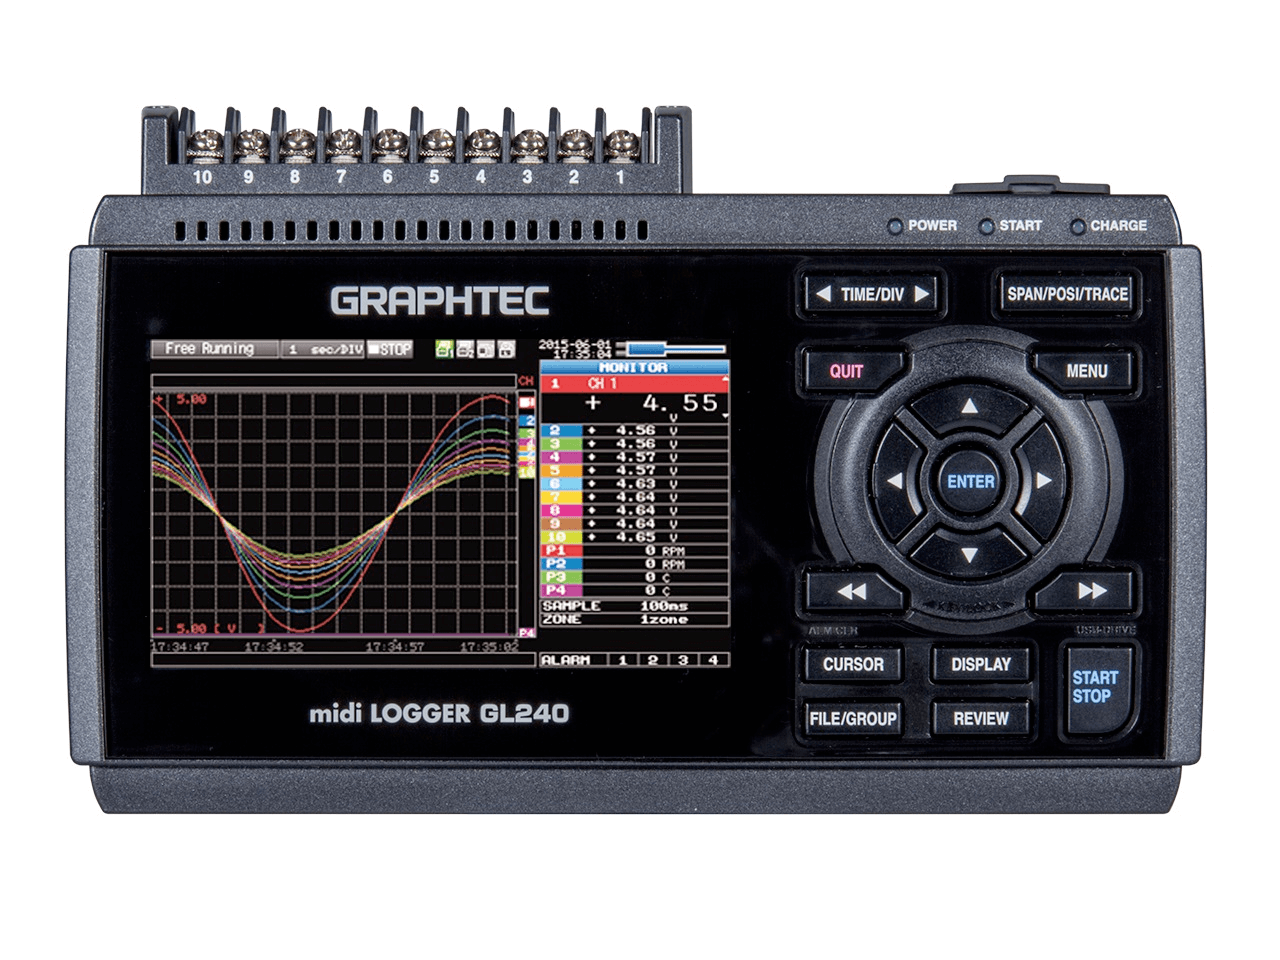 The Graphtec GL240 model data logger